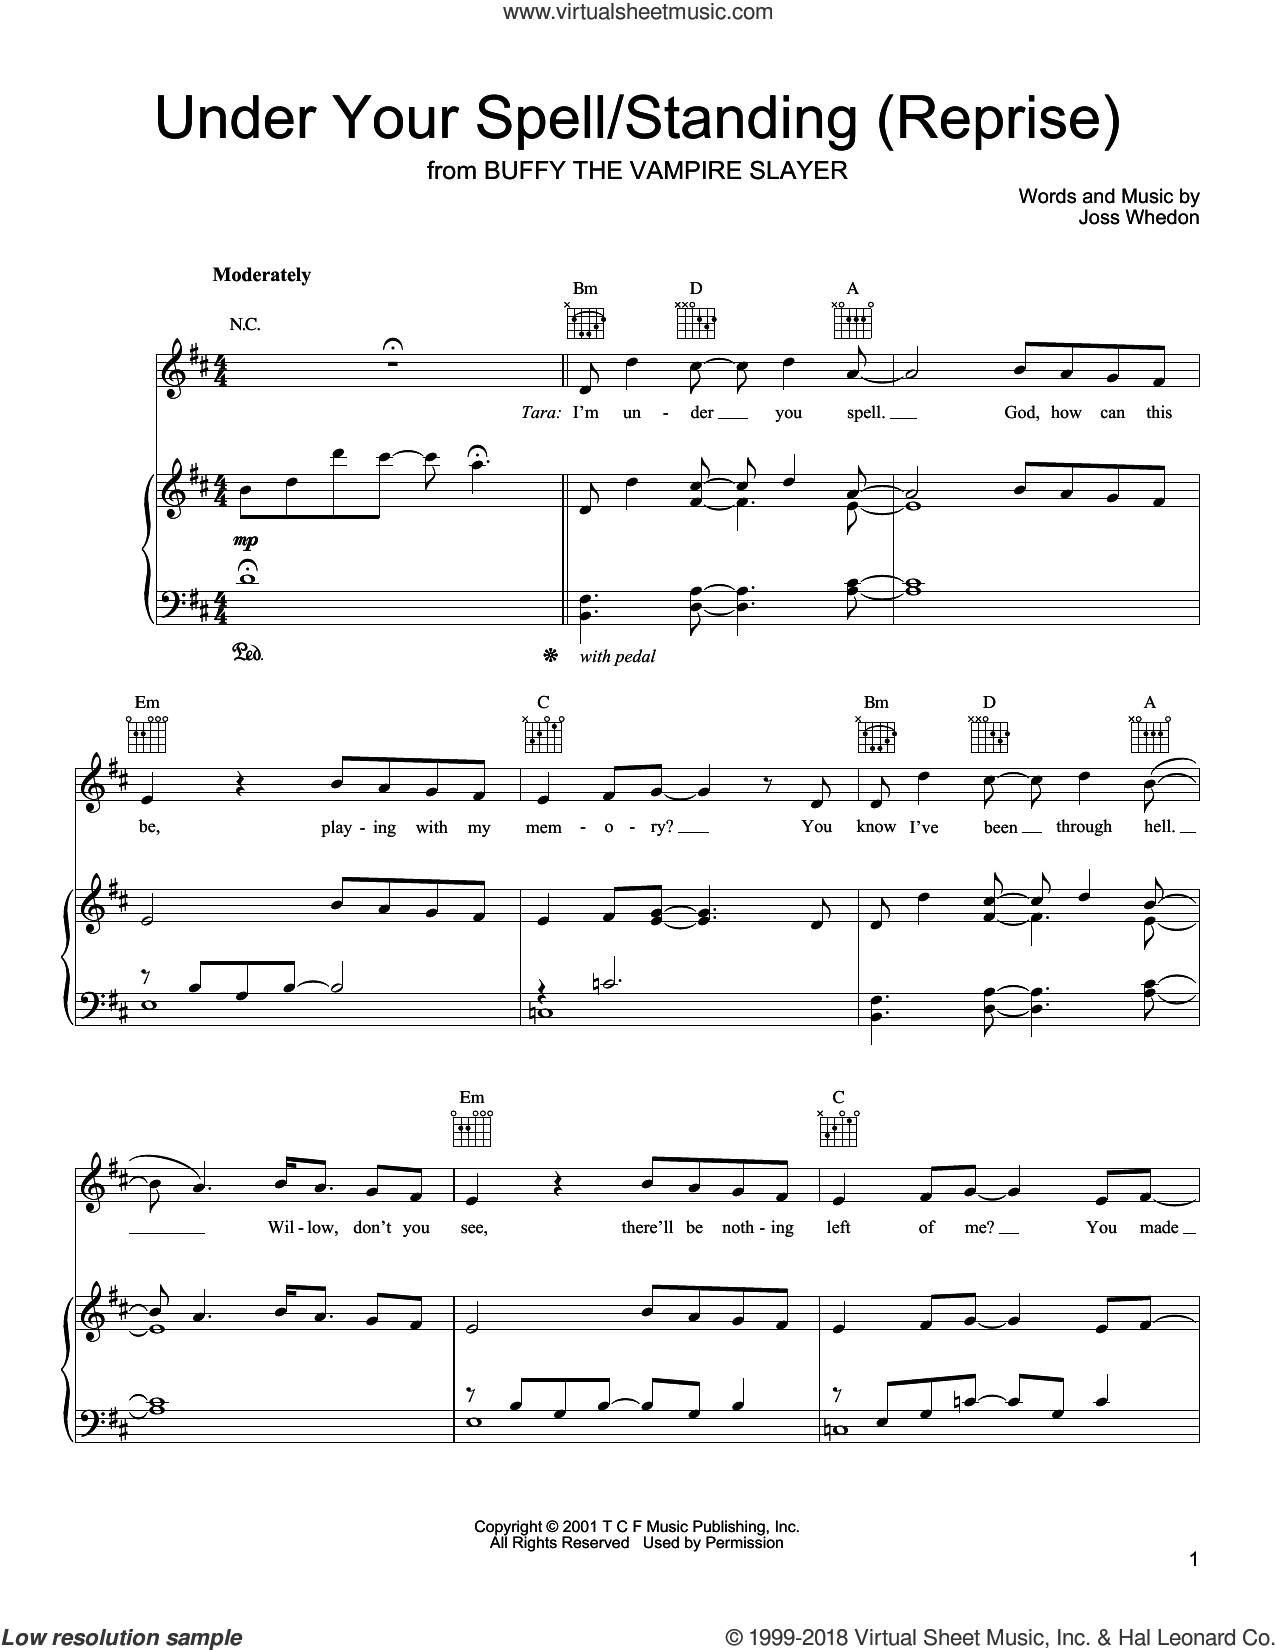 Under Your Spell/Standing (Reprise) sheet music for voice, piano or guitar by Joss Whedon. Score Image Preview.